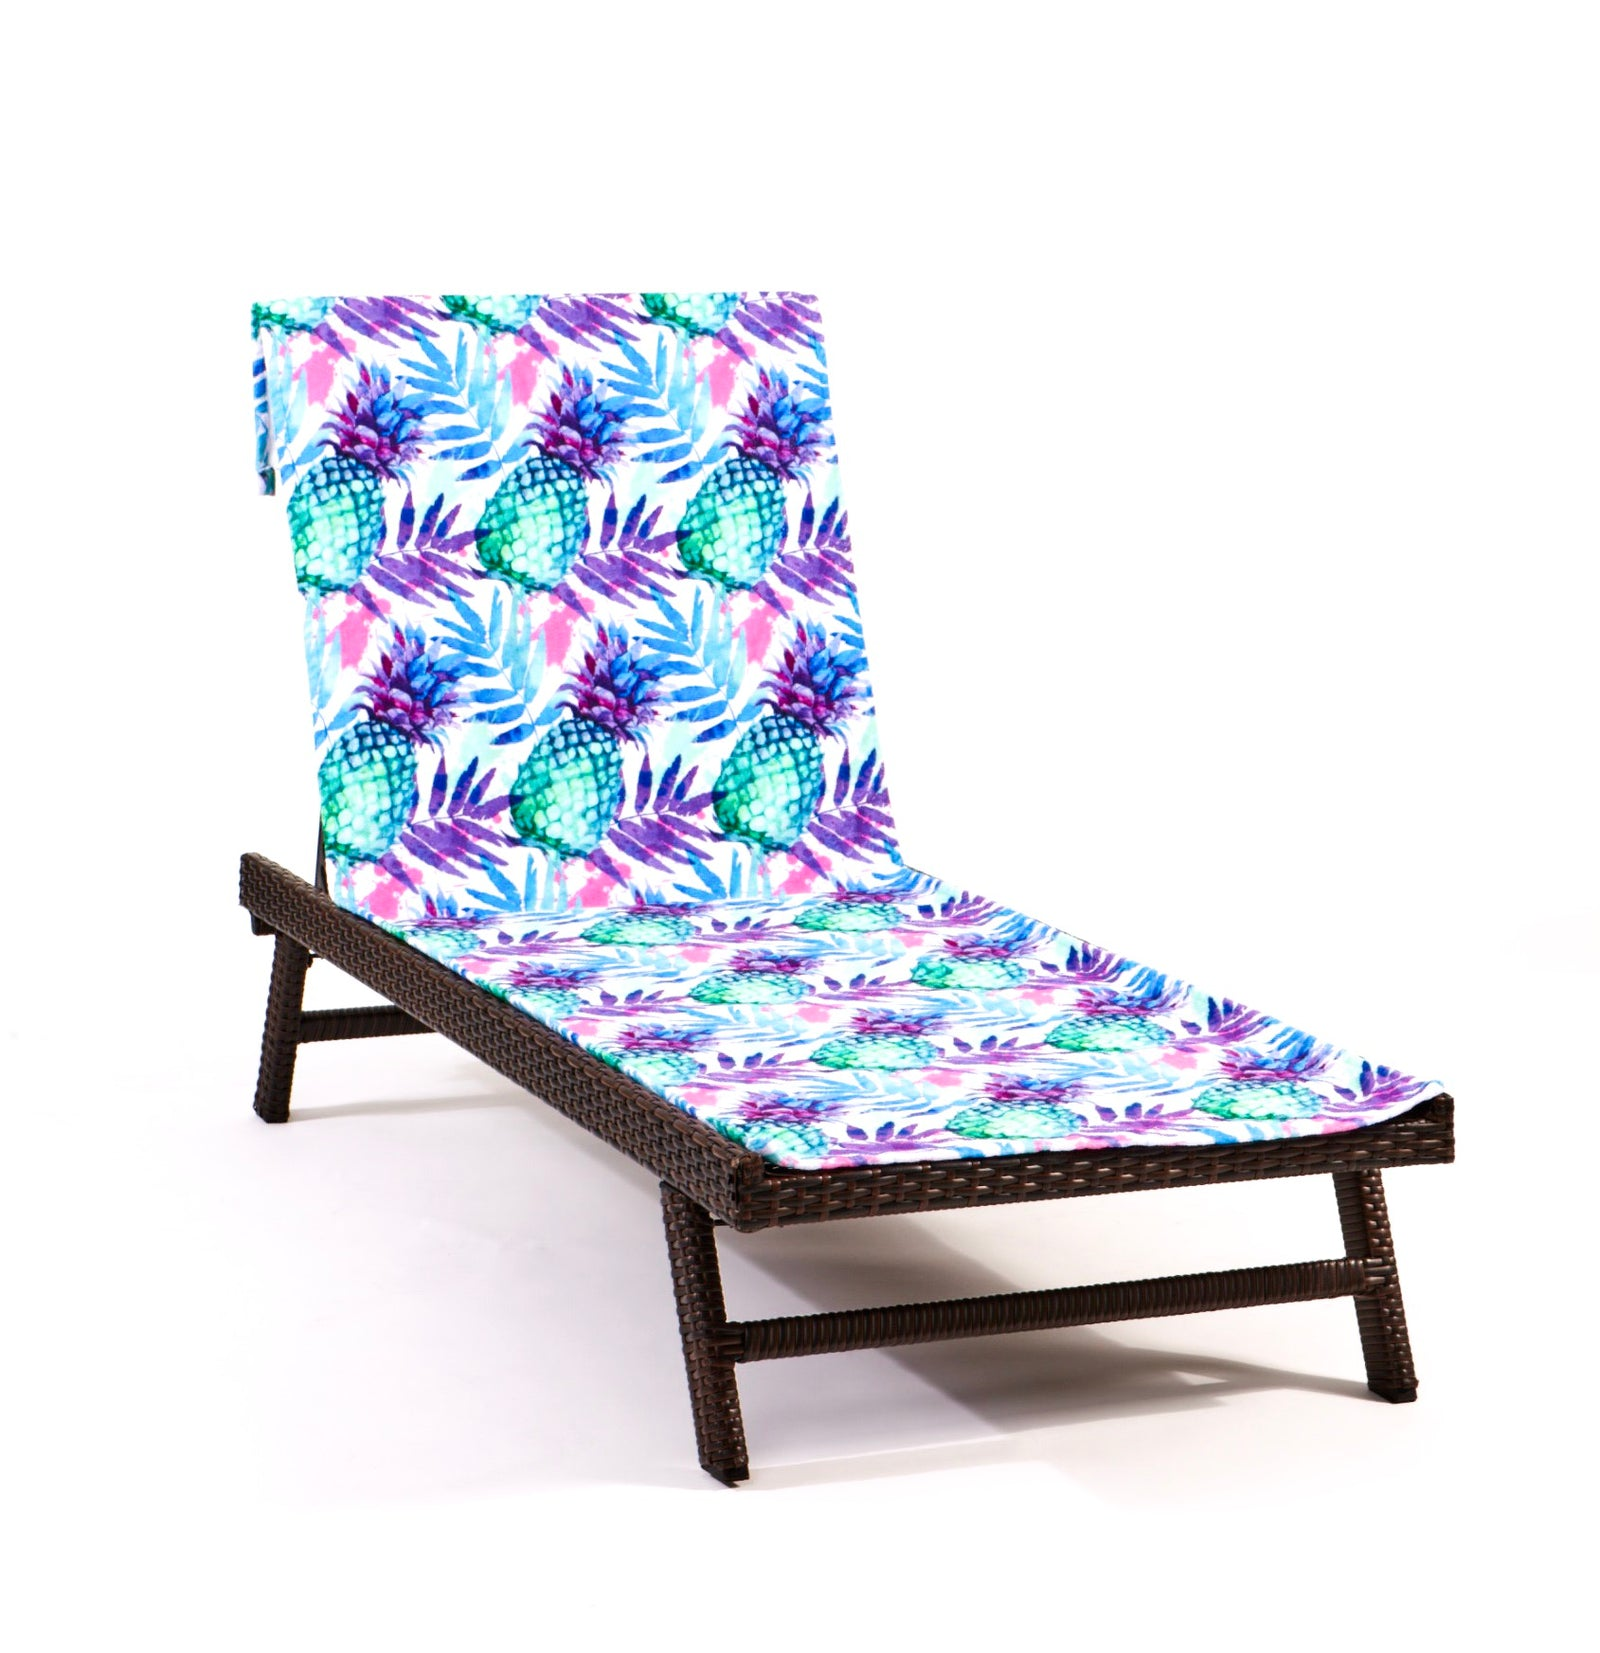 Pineapple Express Lounge Chair-Length Beach Towel